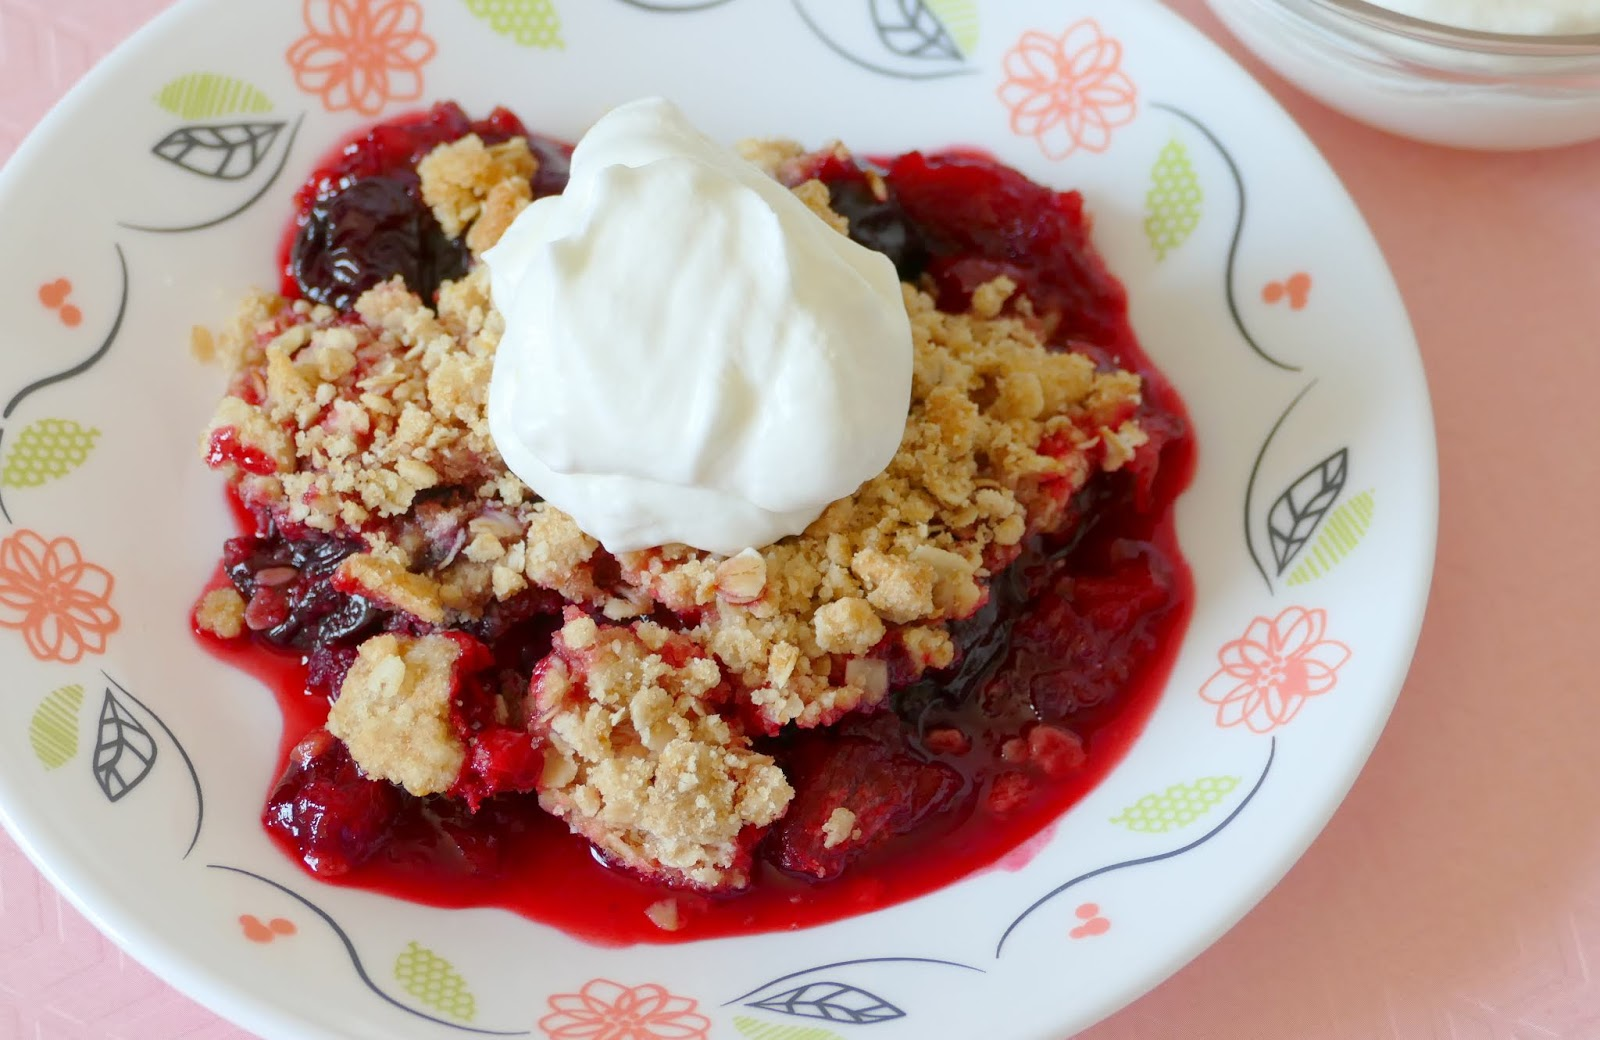 This heavenly spring and summer dessert has delicious chunks of rhubarb and whole sweet cherries to go with the oatmeal crisp topping! It's unique, easy to make and a family favorite! Top with whipped cream or ice cream for an extra treat! Try using different fruit and jello combos with the rhubarb for a new twist every time!